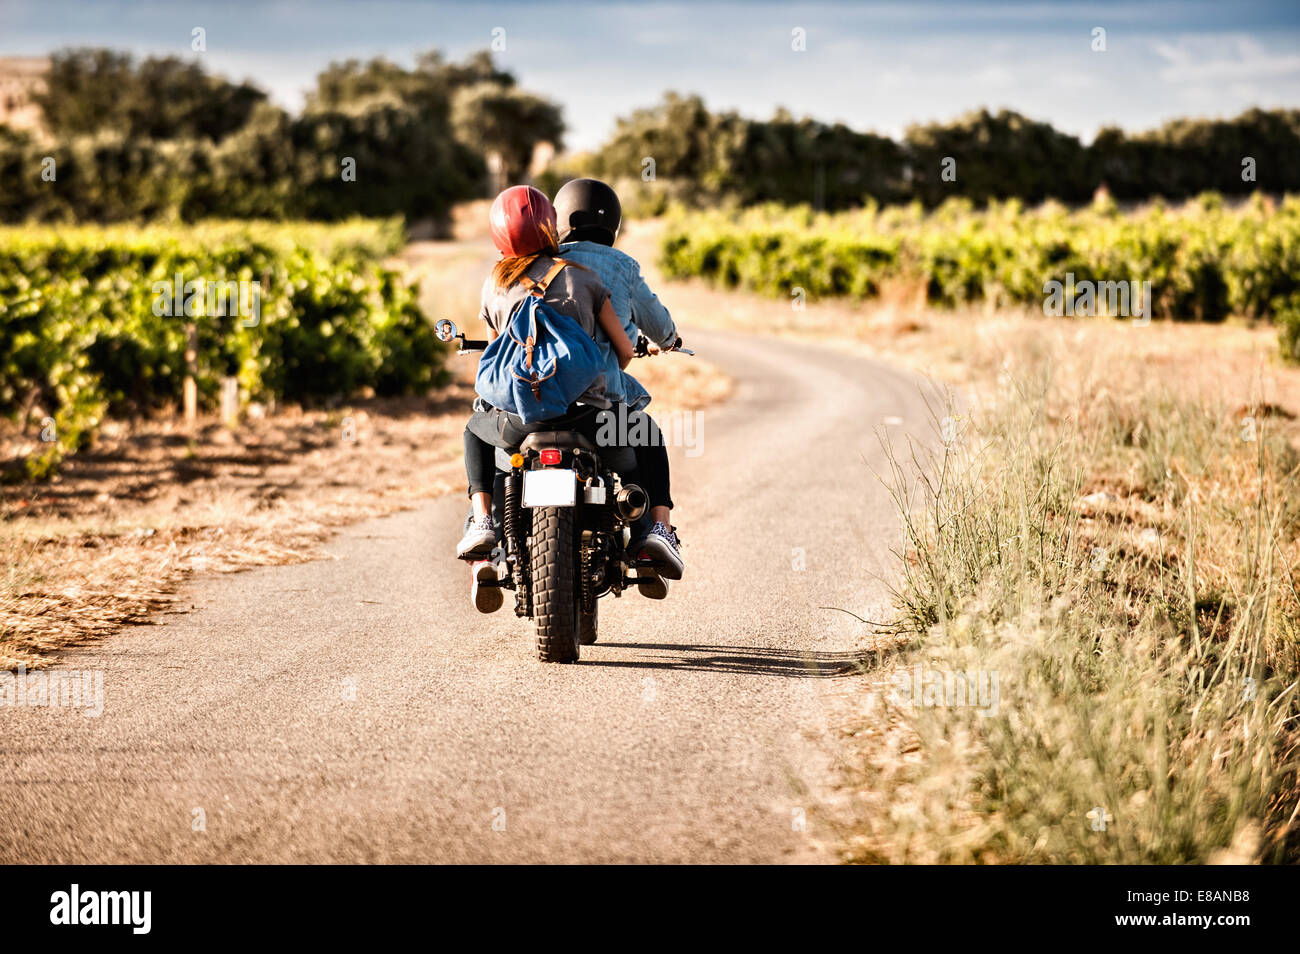 Rear view of mid adult couple riding motorcycle on winding rural road, Cagliari, Sardinia, Italy - Stock Image